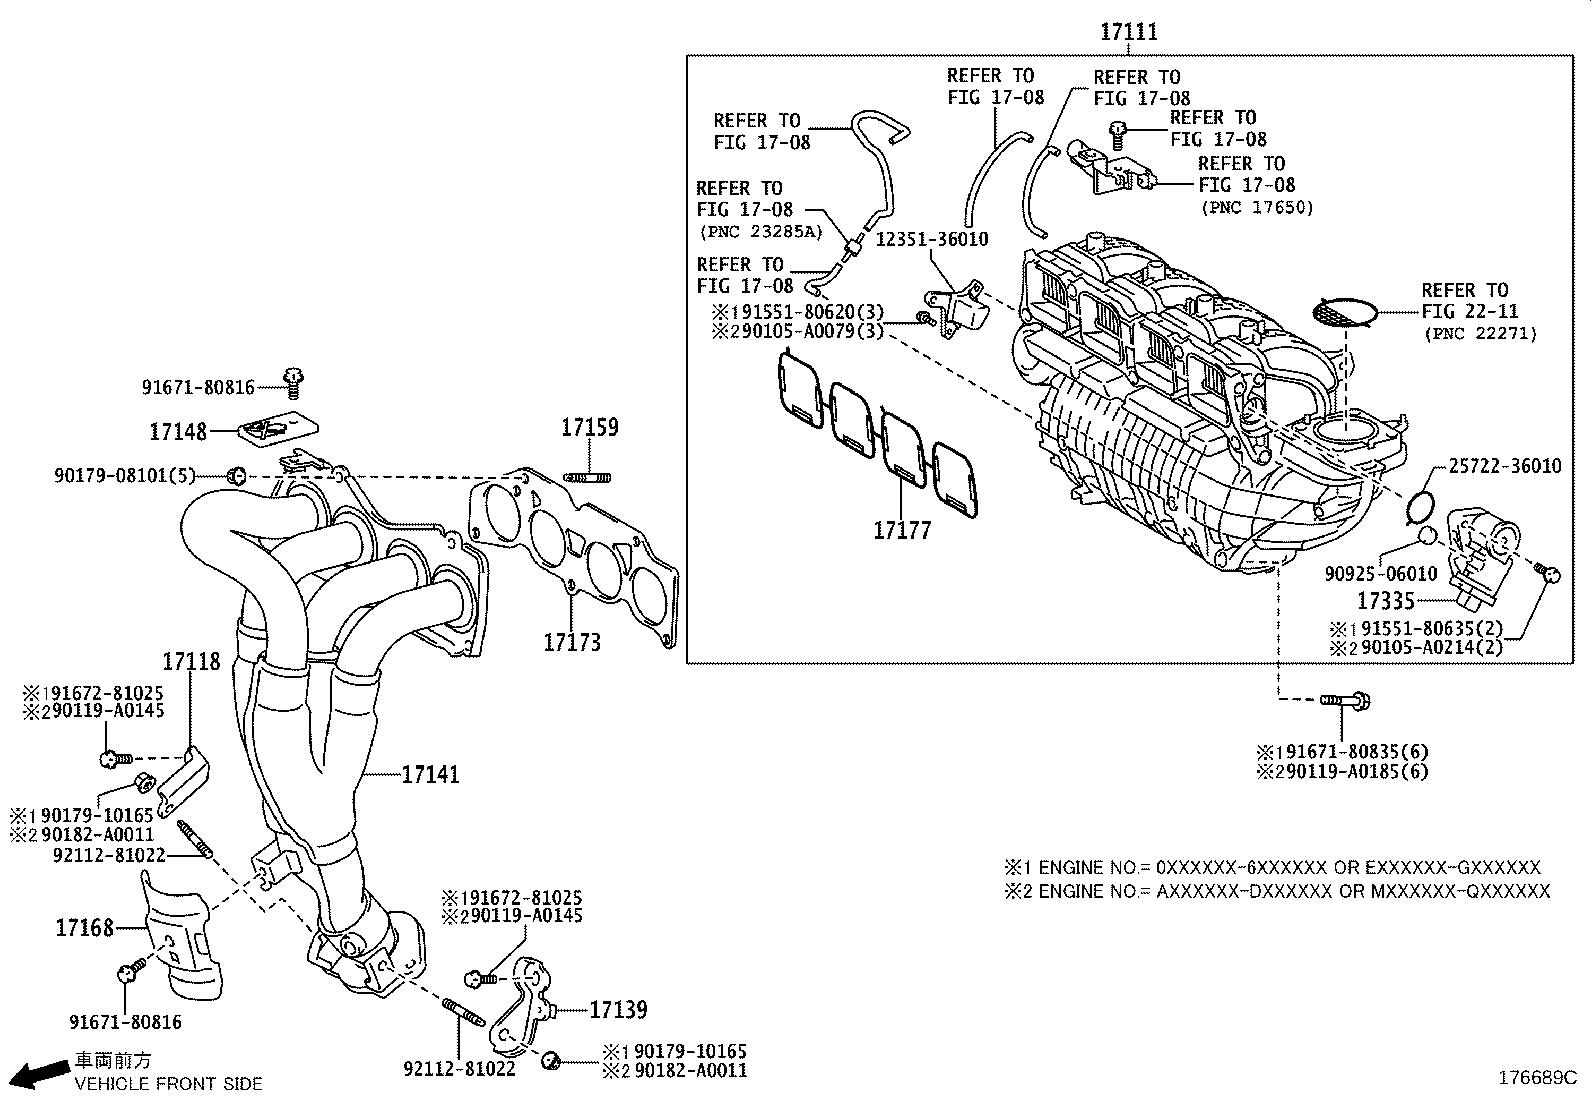 2005 Toyota Sienna Manifold sub-assembly, exhaust, right